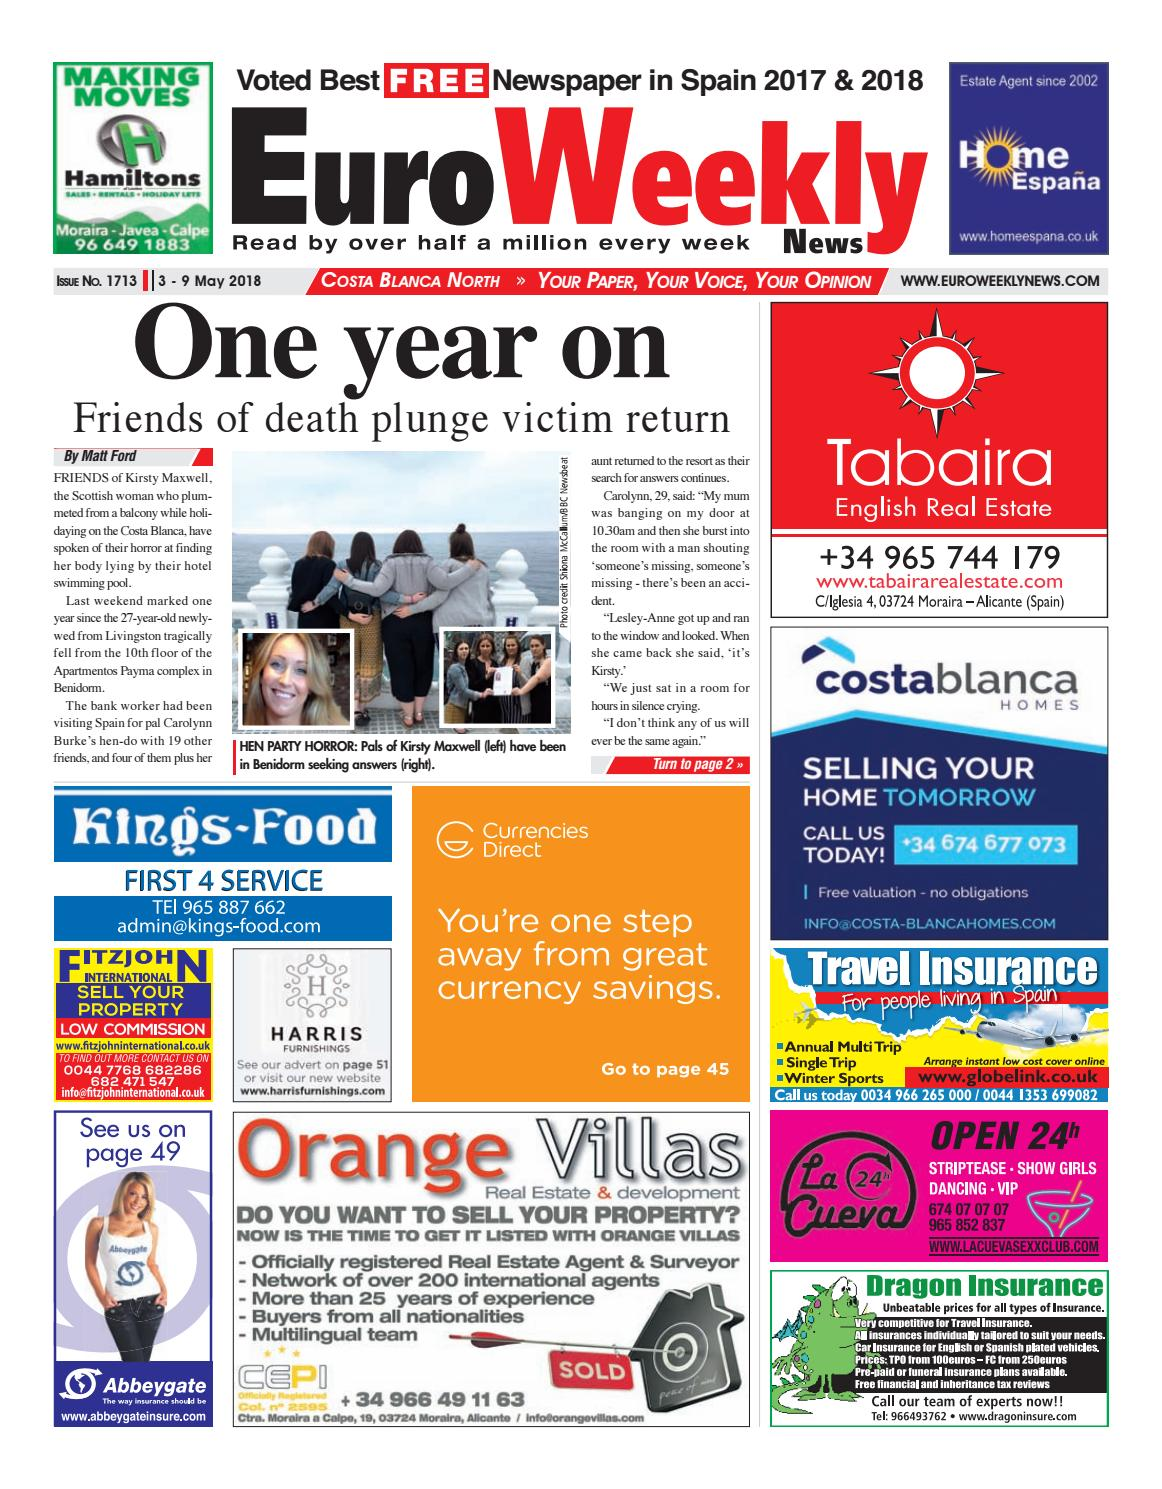 53d0f4d5b Euro Weekly News - Costa Blanca North 3 - 9 May 2018 Issue 1713 by Euro  Weekly News Media S.A. - issuu